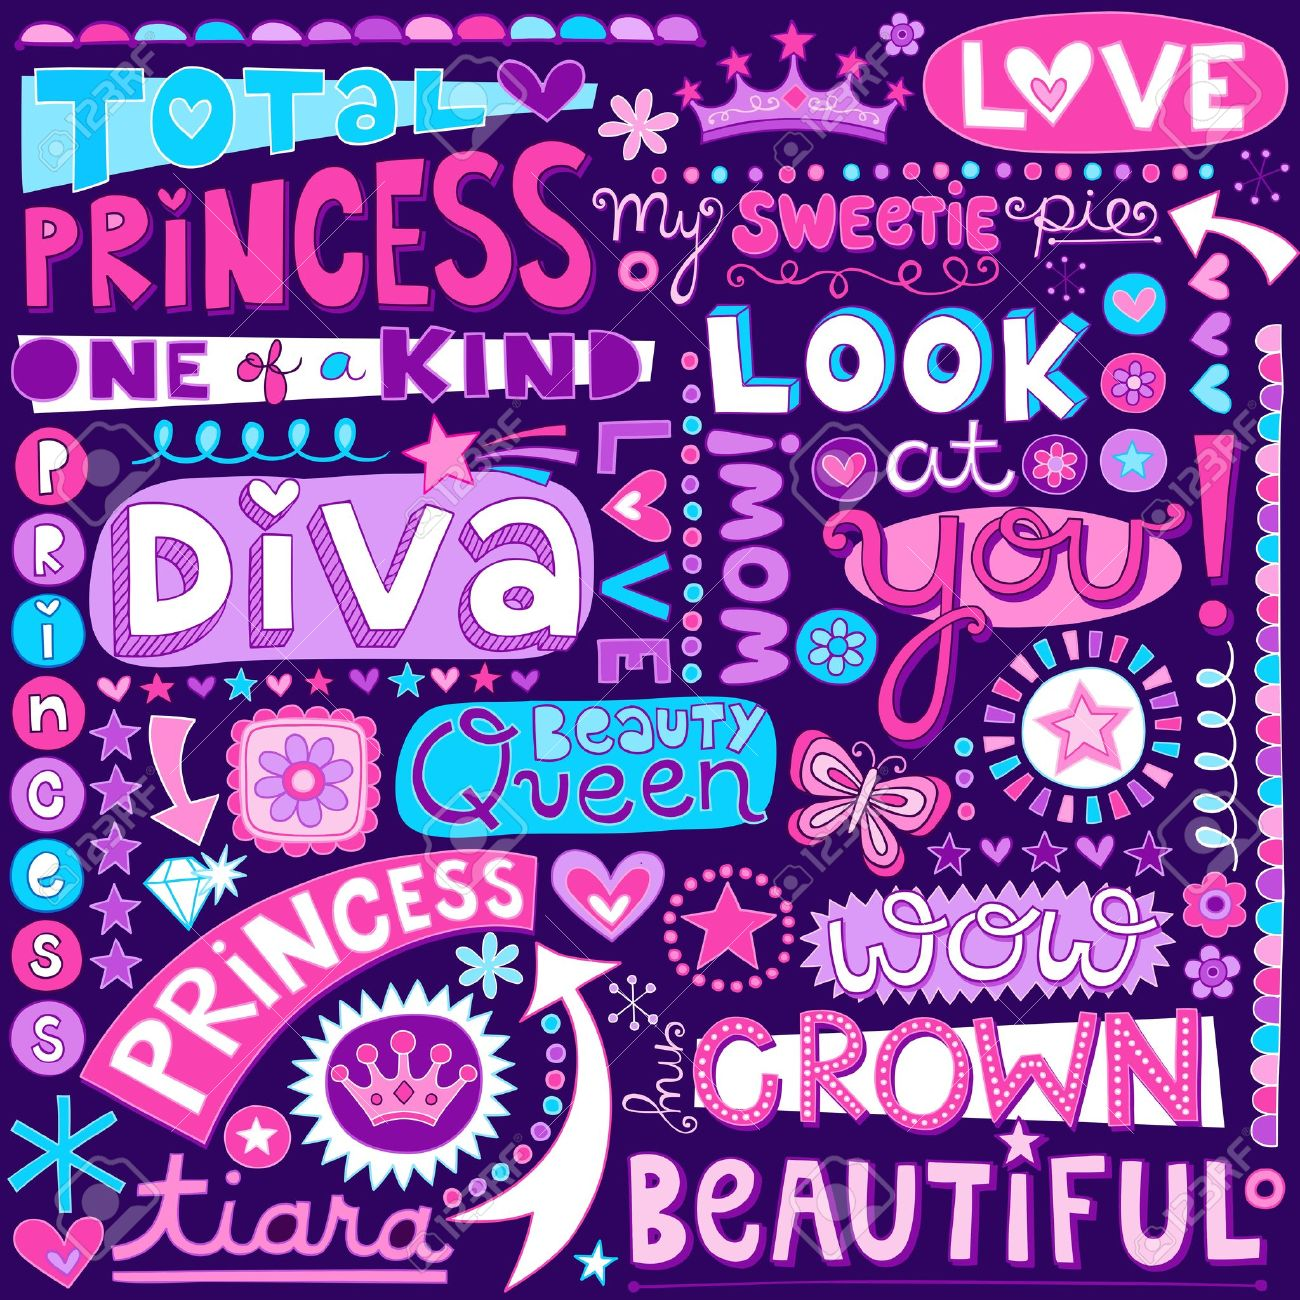 Princess Fairy Tale Diva Word Doodles Lettering  Illustration Stock Vector - 22257325